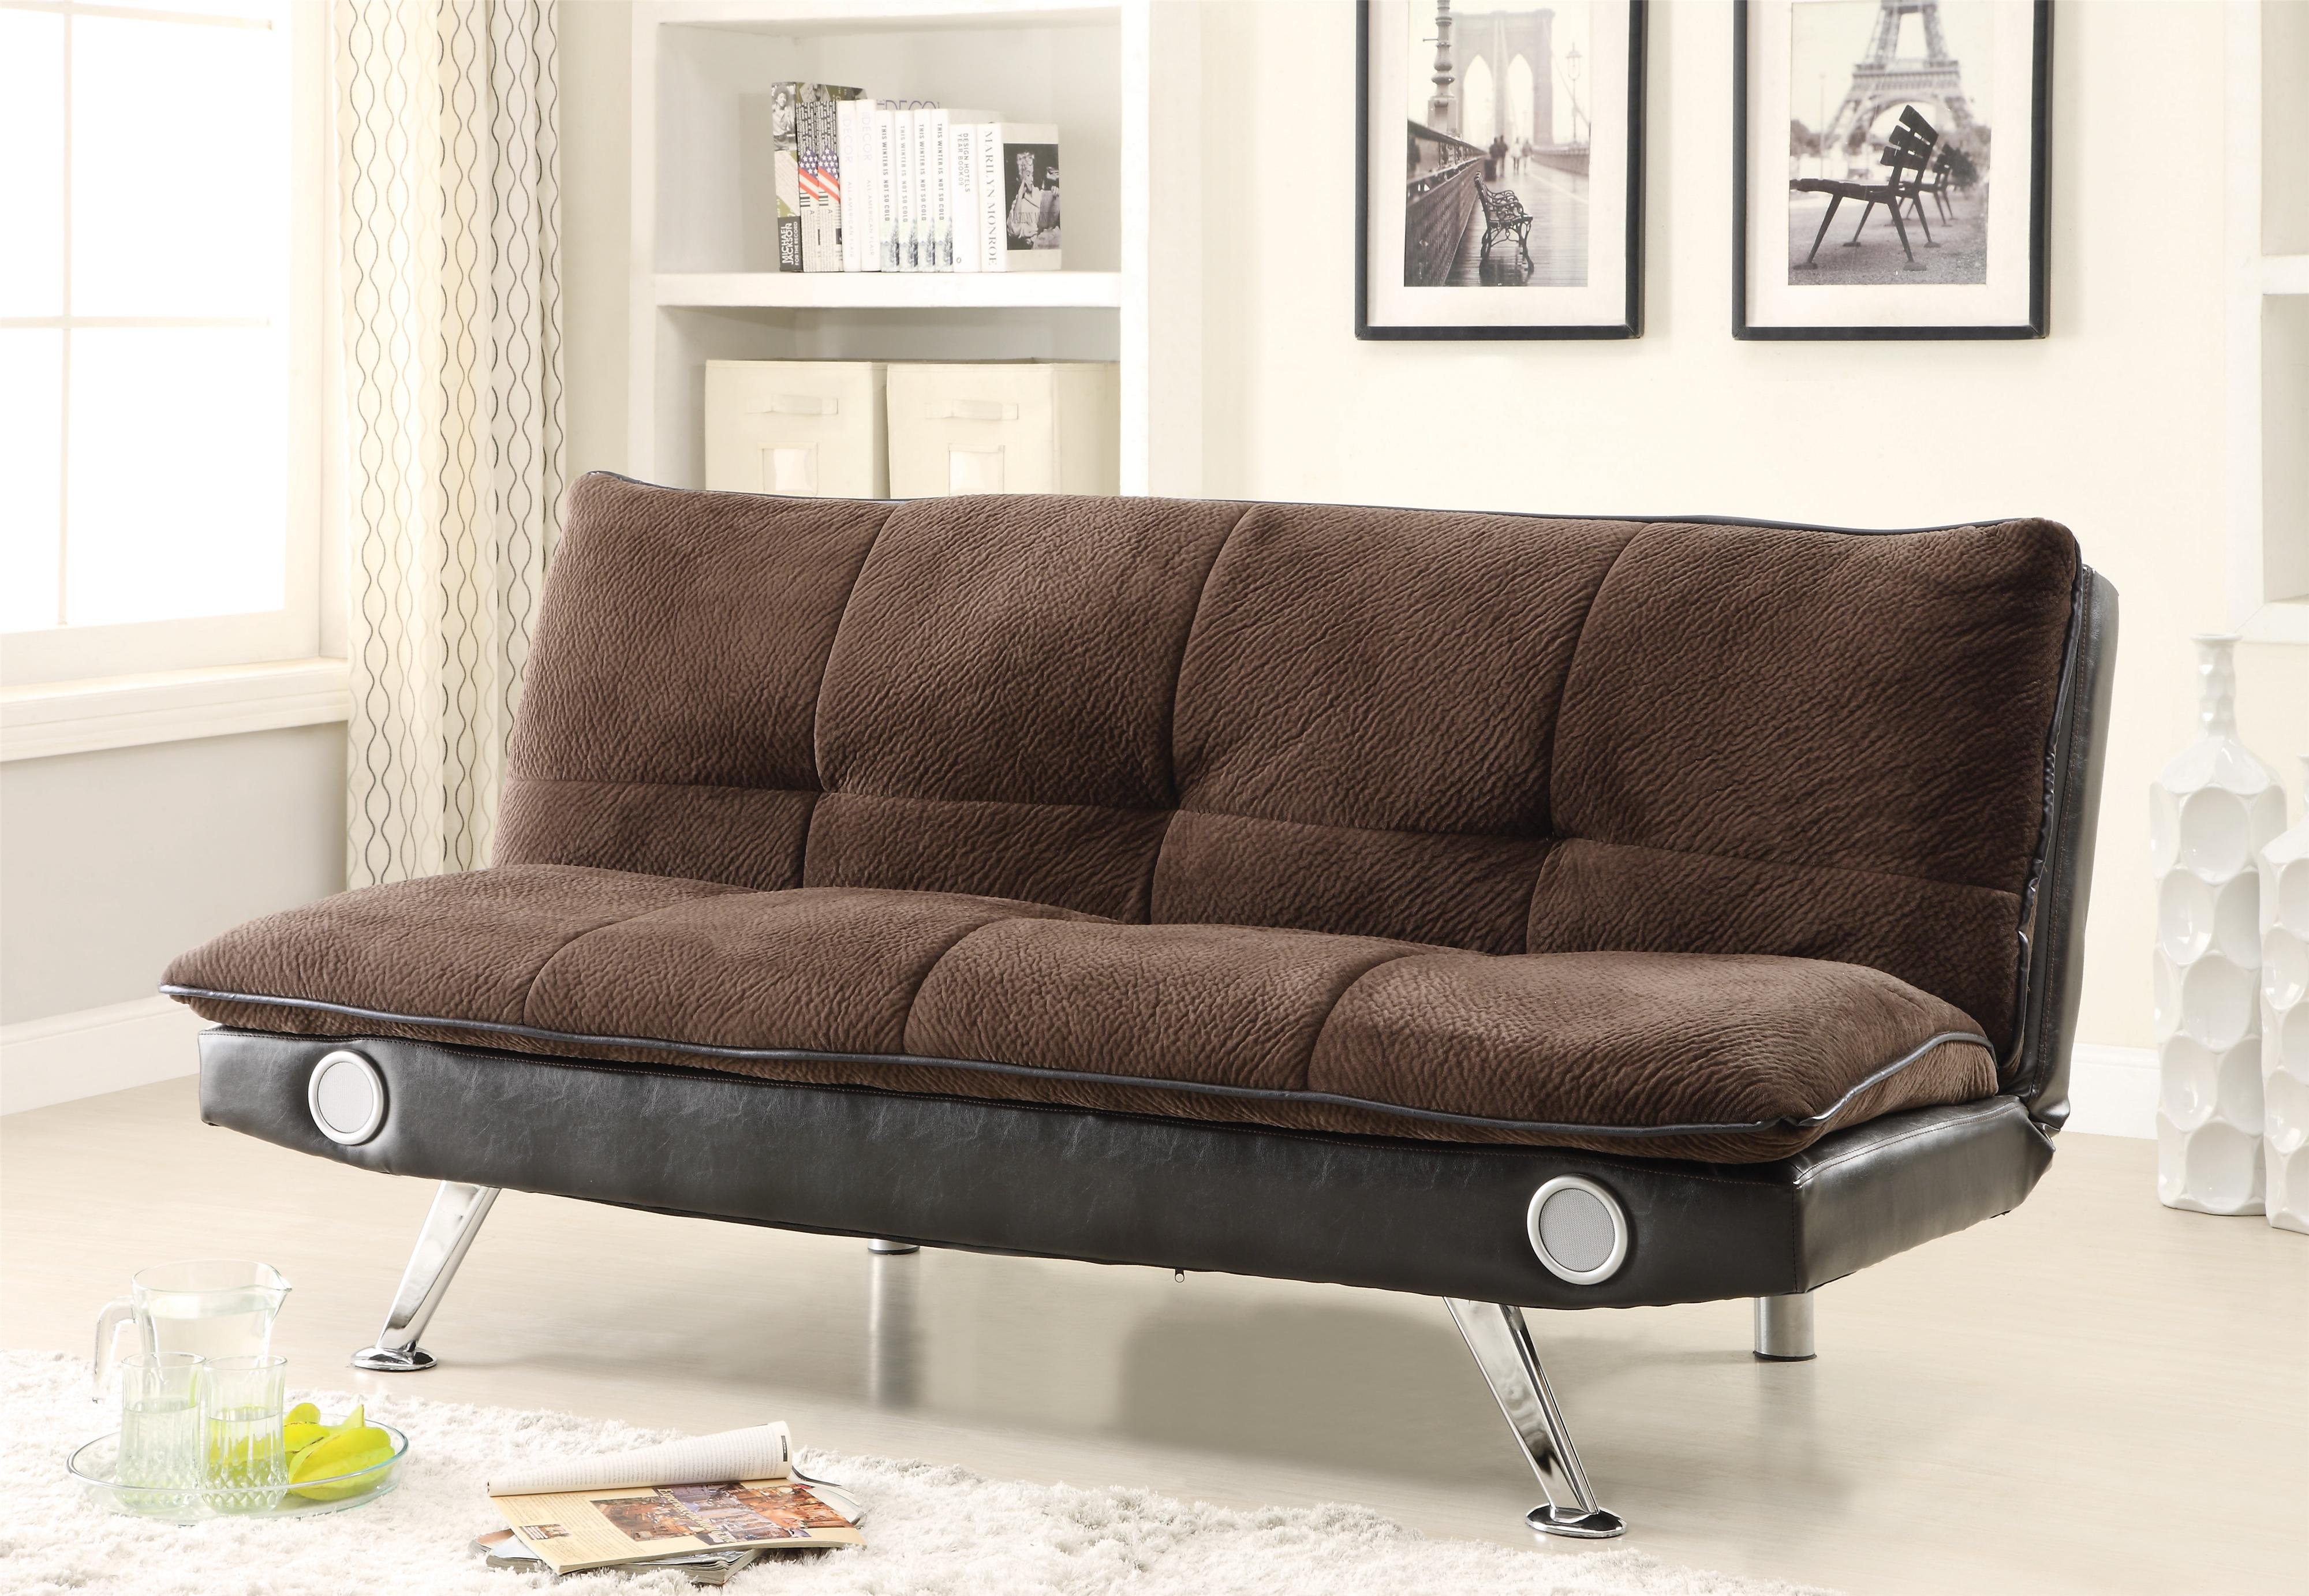 today home sofa garden free futon overstock beds bed venti product dhp shipping